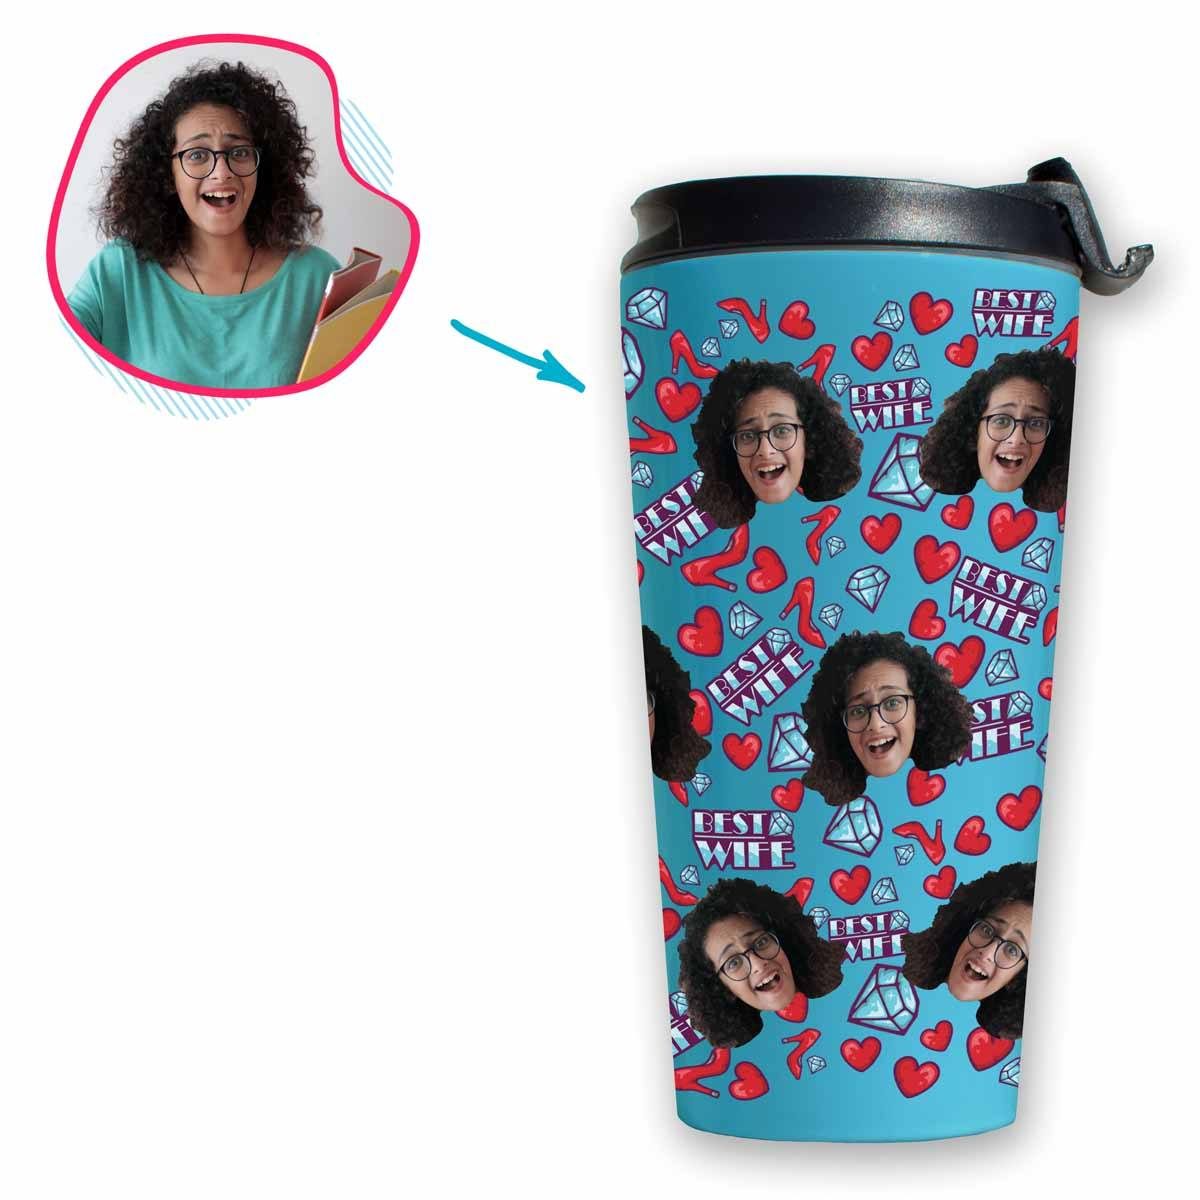 Blue Wife personalized travel mug with photo of face printed on it